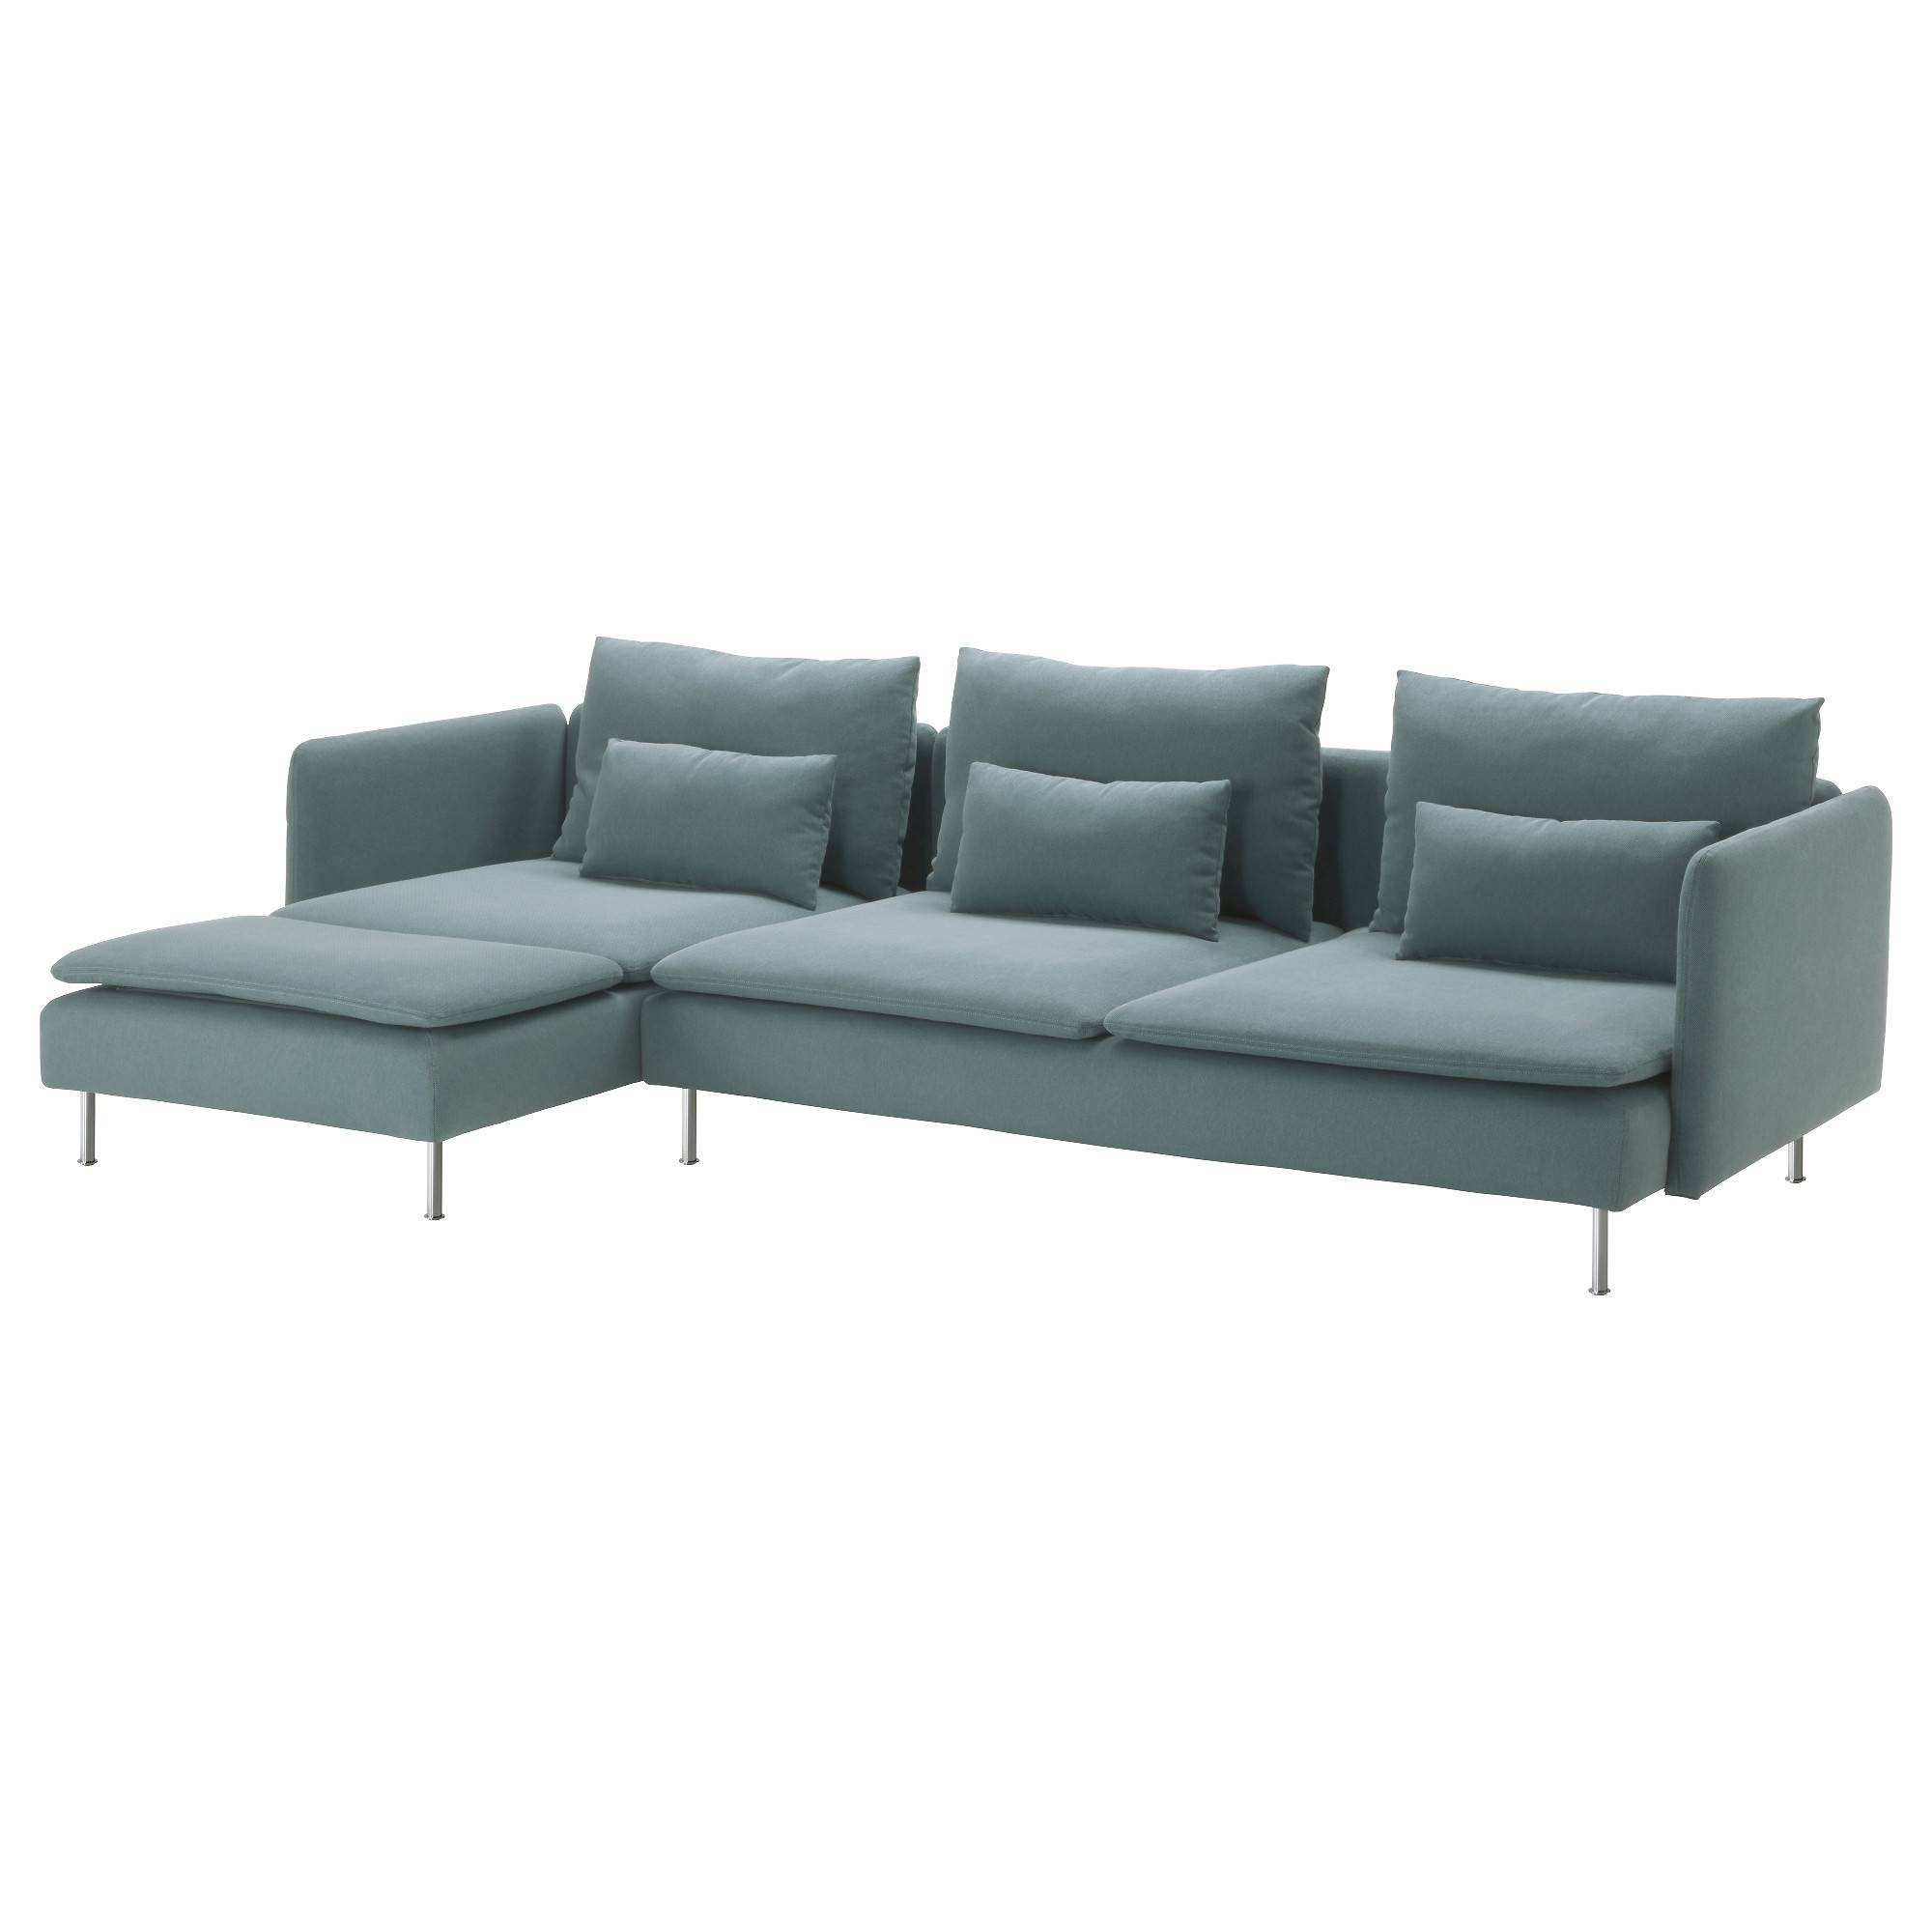 Fabric Sofas - Modern & Contemporary - Ikea inside 4 Seater Couch (Image 13 of 30)